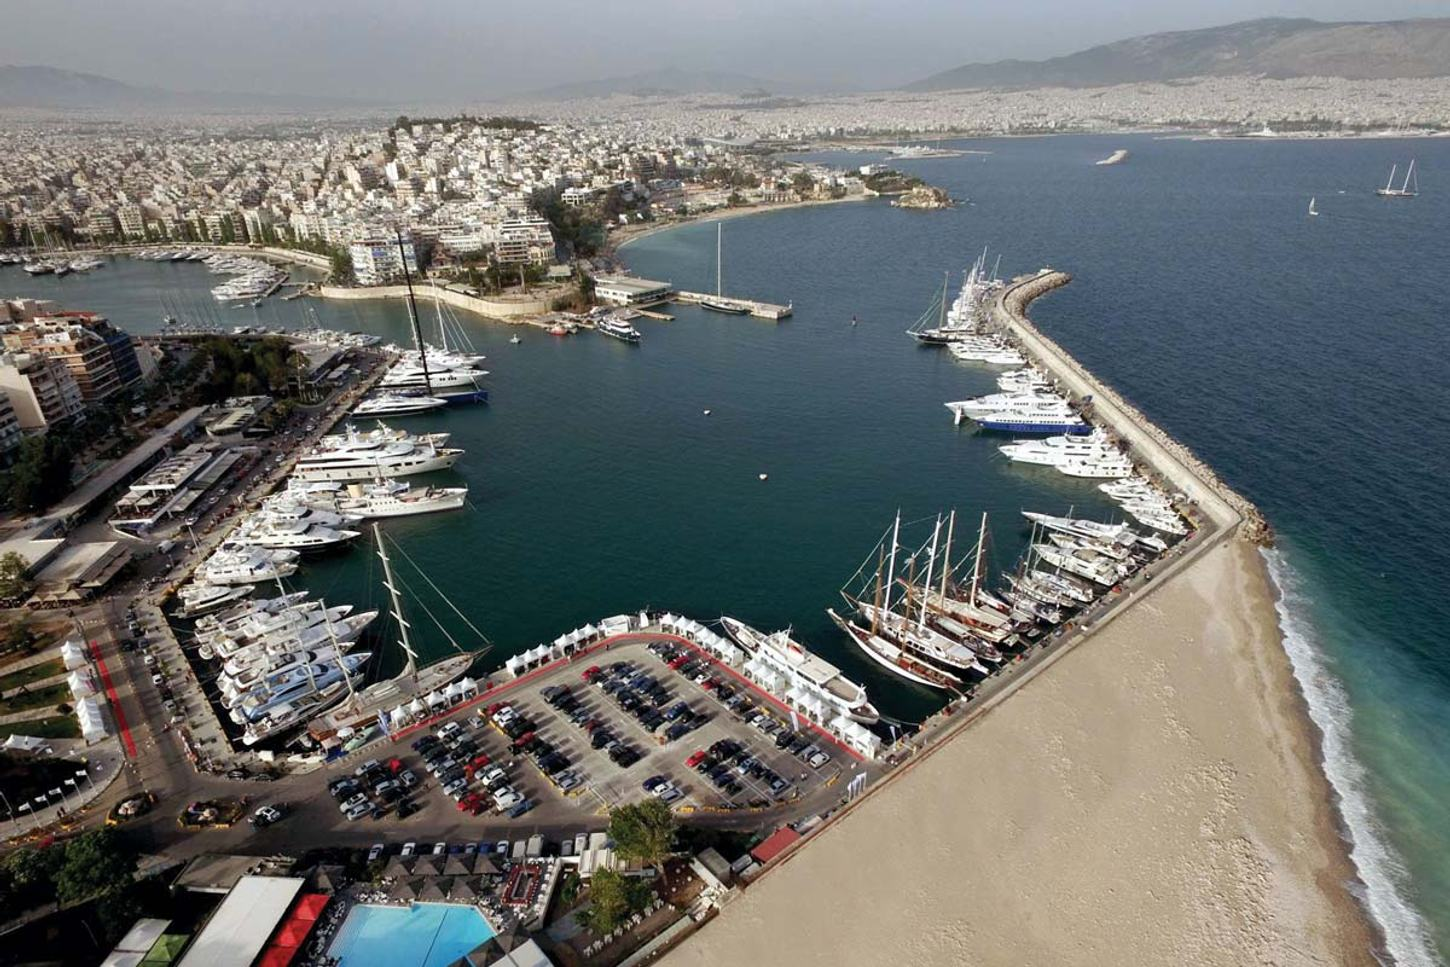 overhead view of the East Med Yacht Show in Marina Zeas, Piraeus